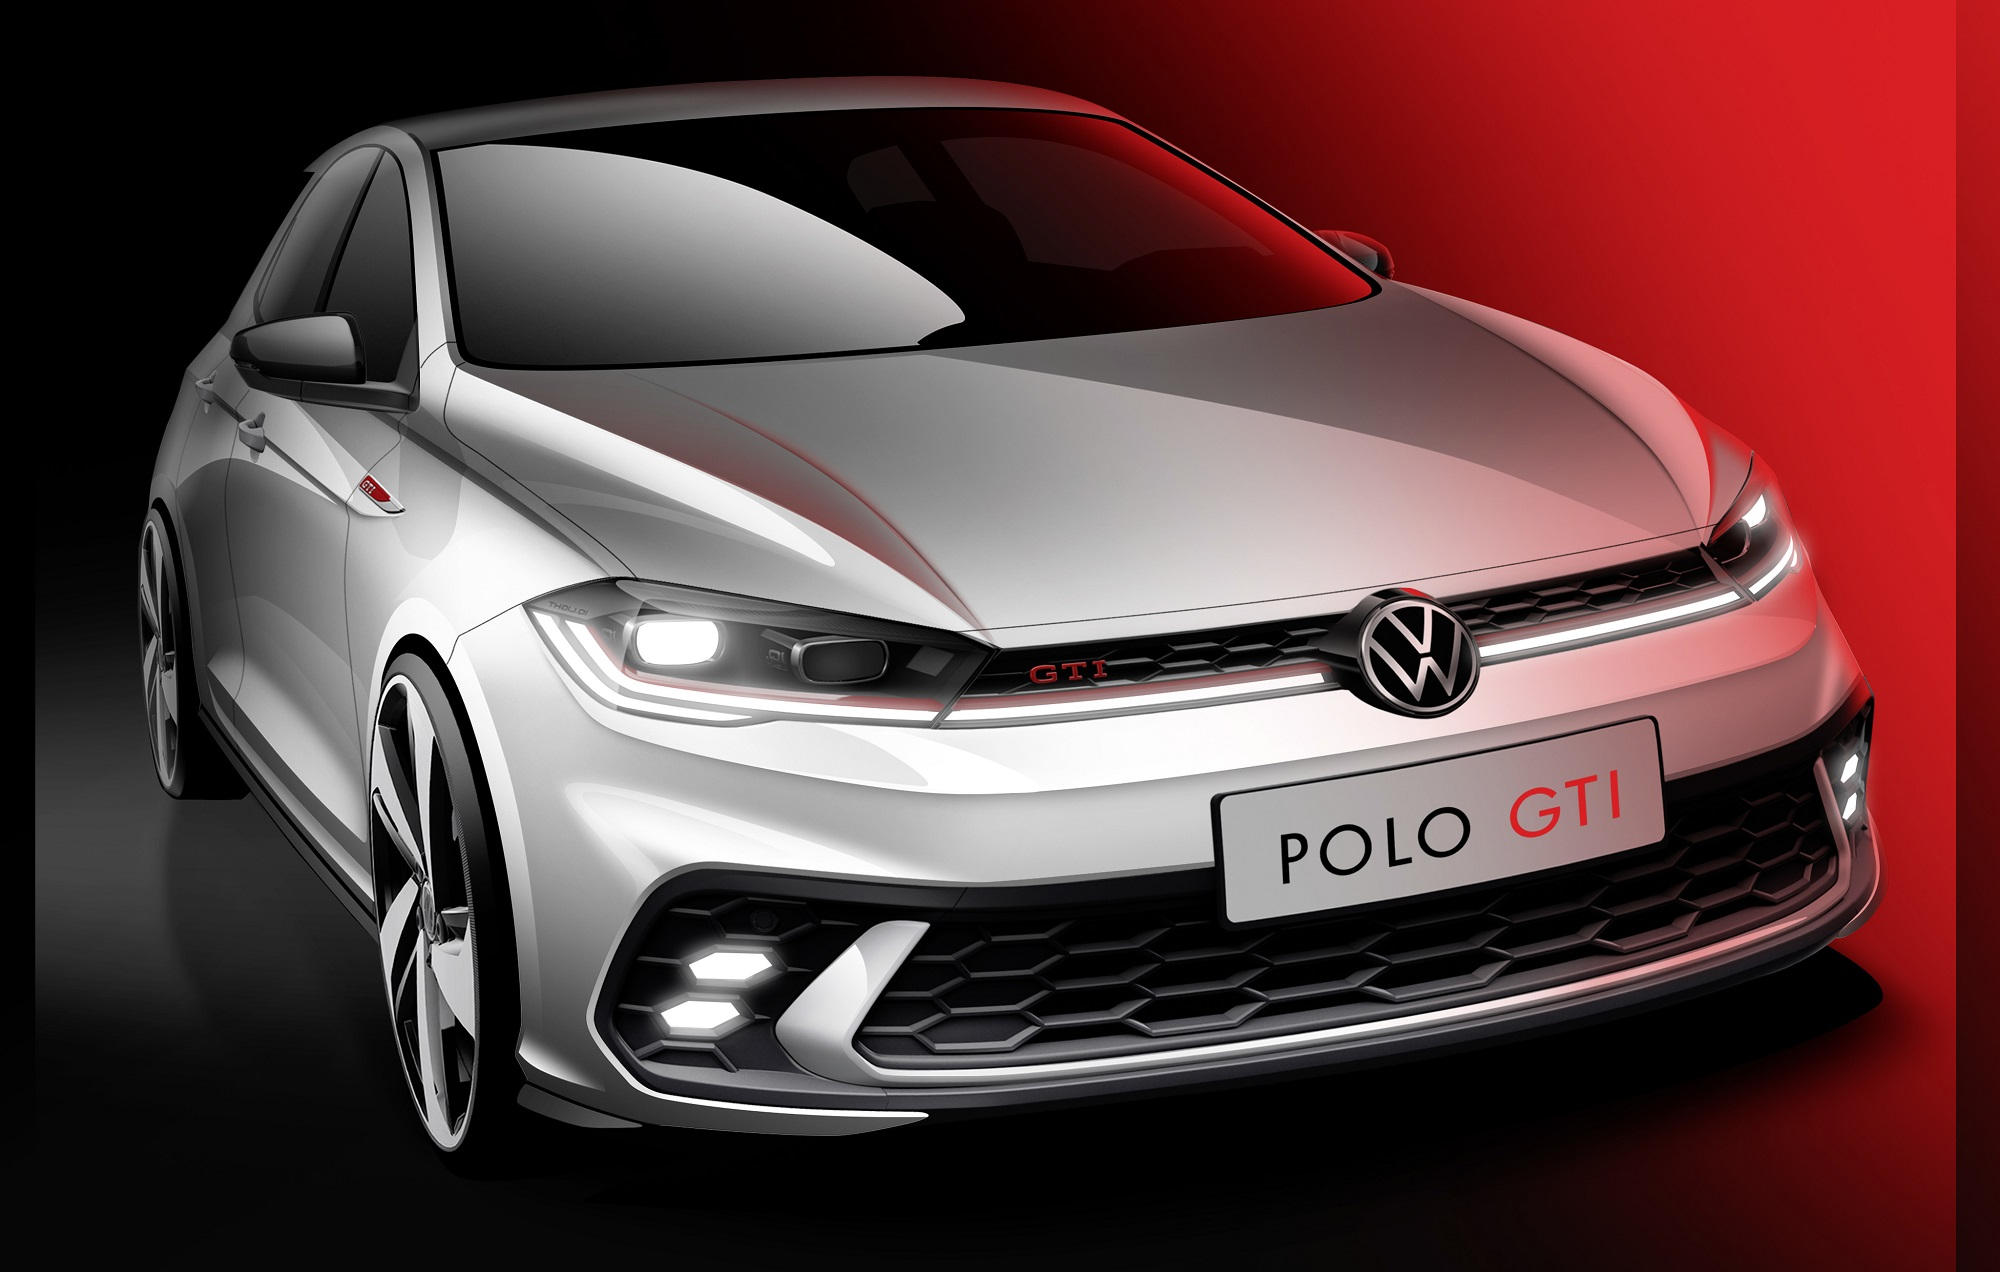 Sharper, dynamic, power-packed: First flash of the new Polo GTI.